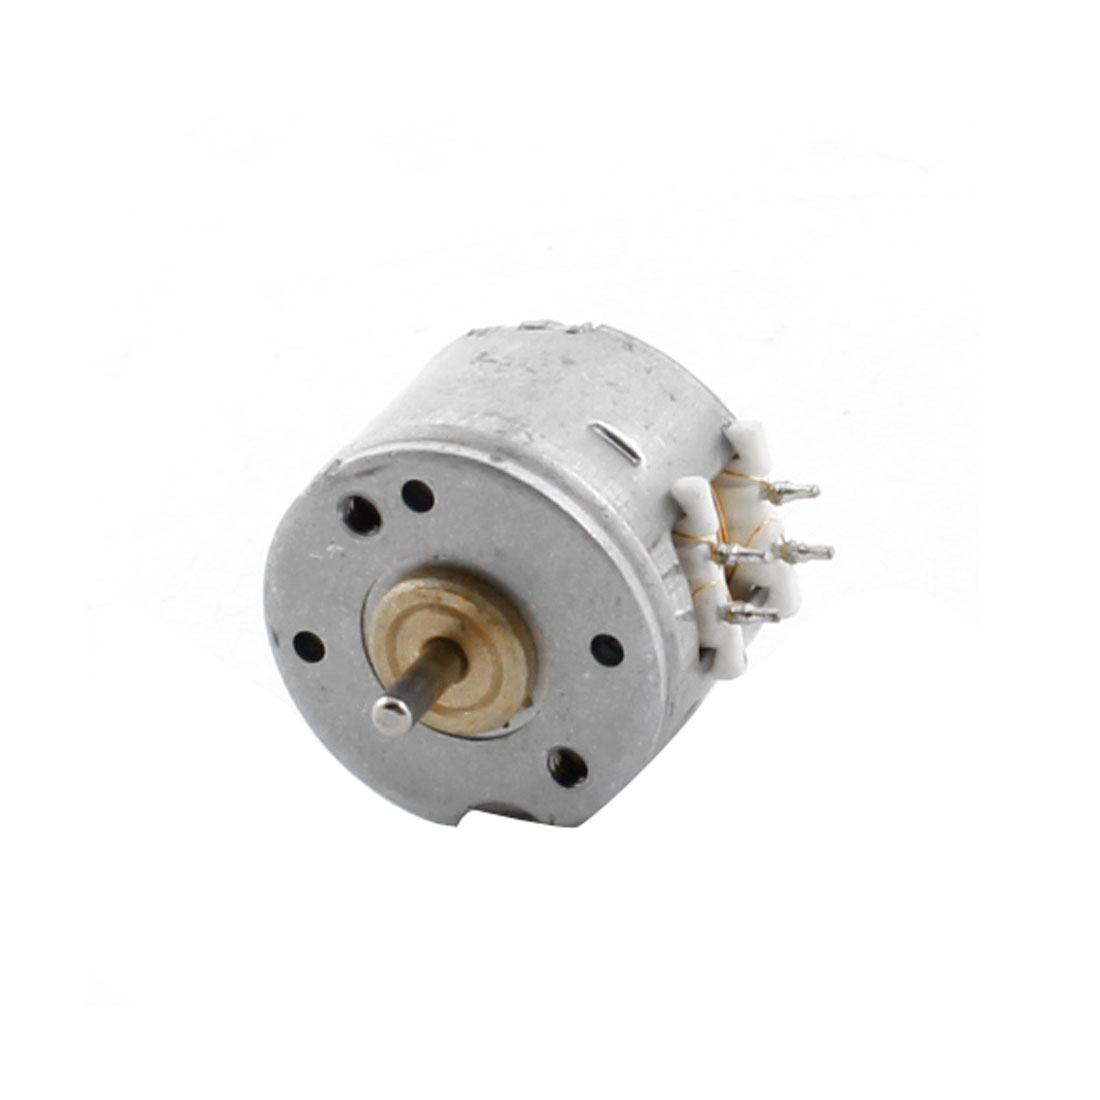 28000RPM DC 3.5V 0.3mA Two Phase Four Wire 15mm Metal Stepper Motor Silver Tone